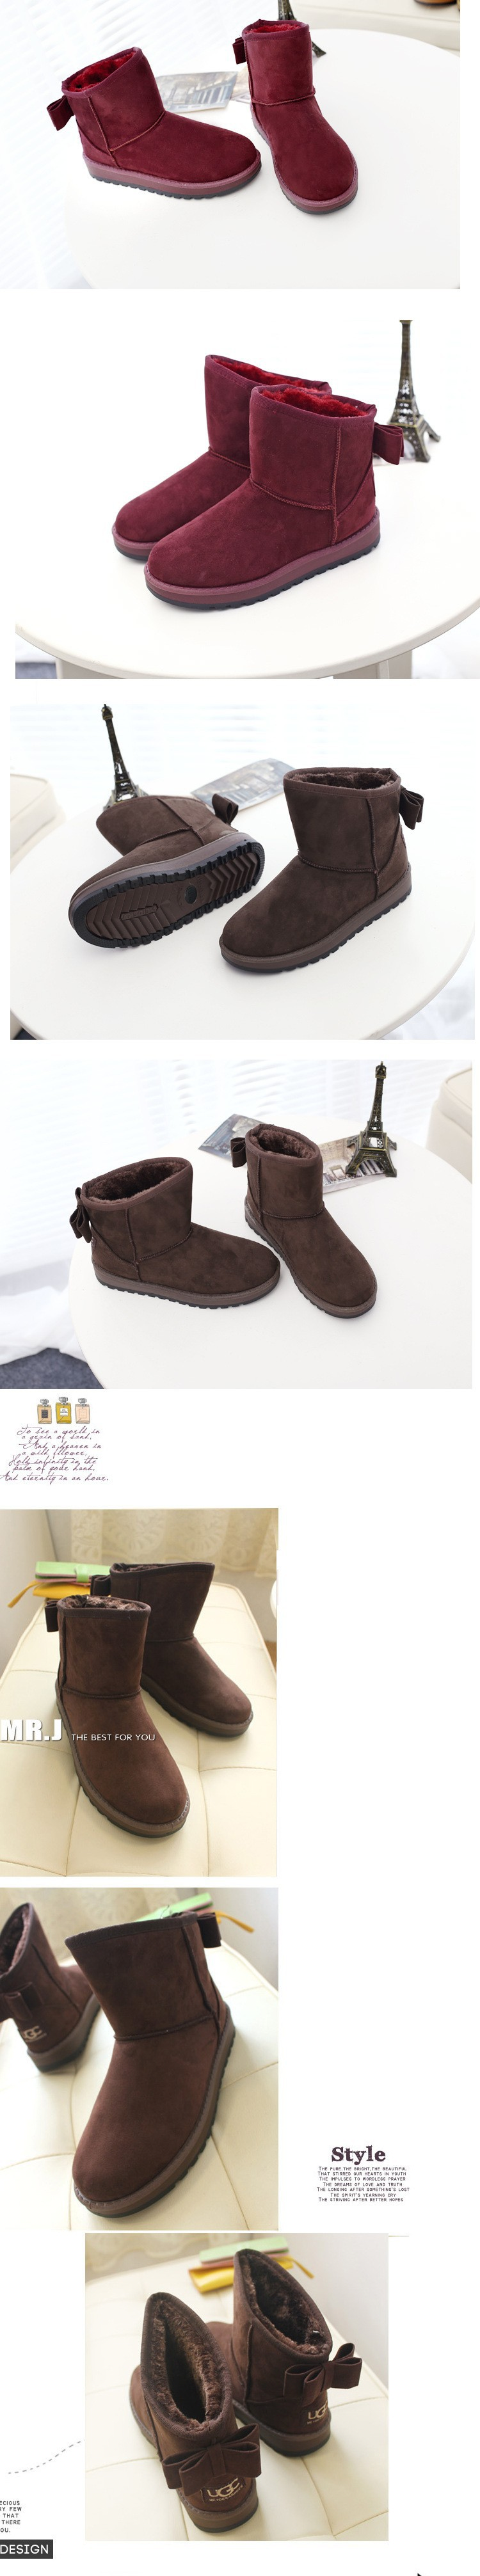 2015 Brand Women Winter Snow Boots Fashion Fur Boots high heels women Boots Shoes High Increased botas Mujer New Arrival B